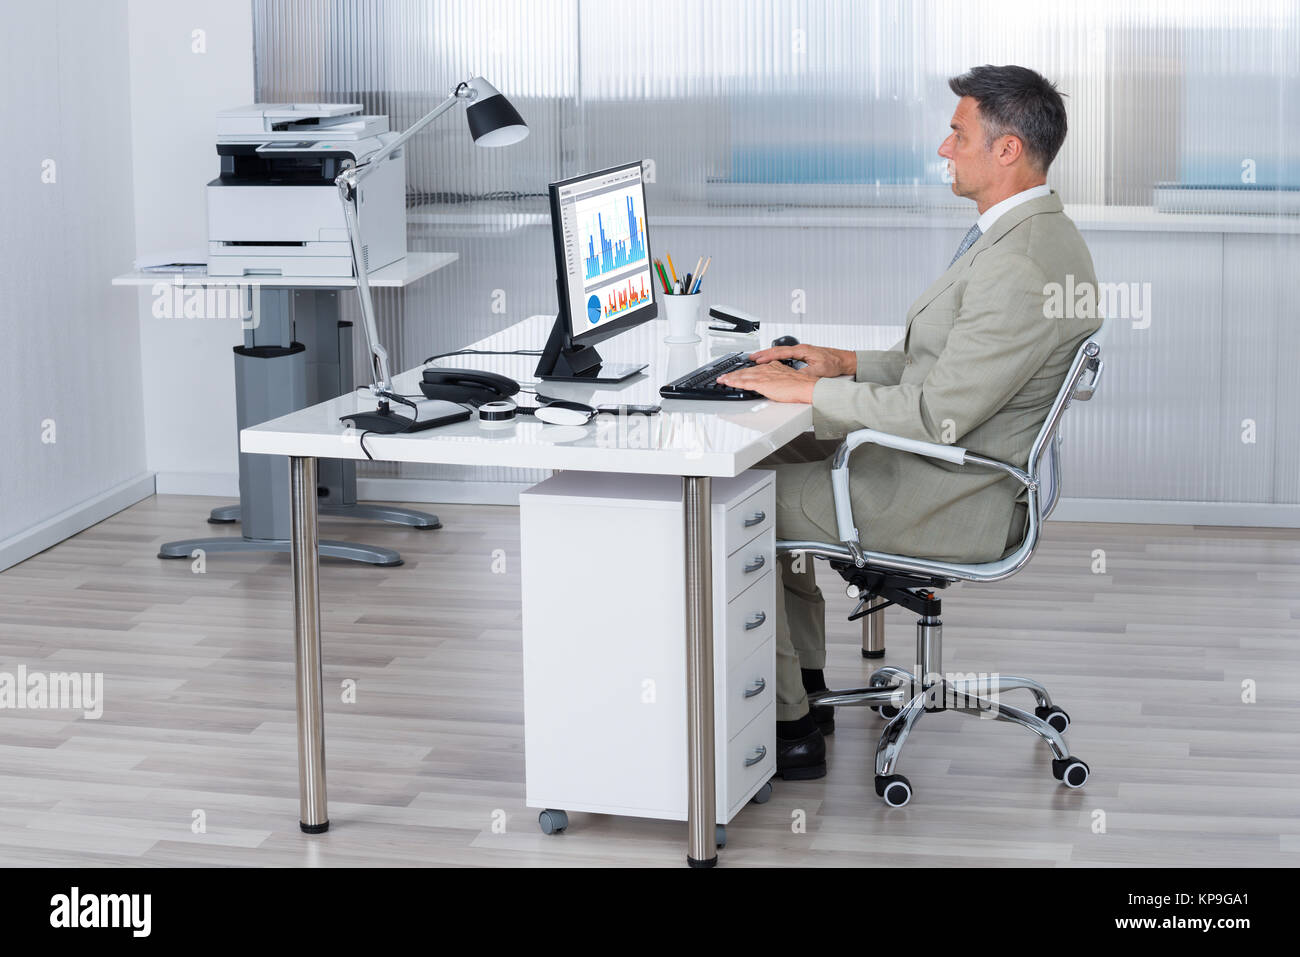 Businessman Using Computer At Desk In Office - Stock Image